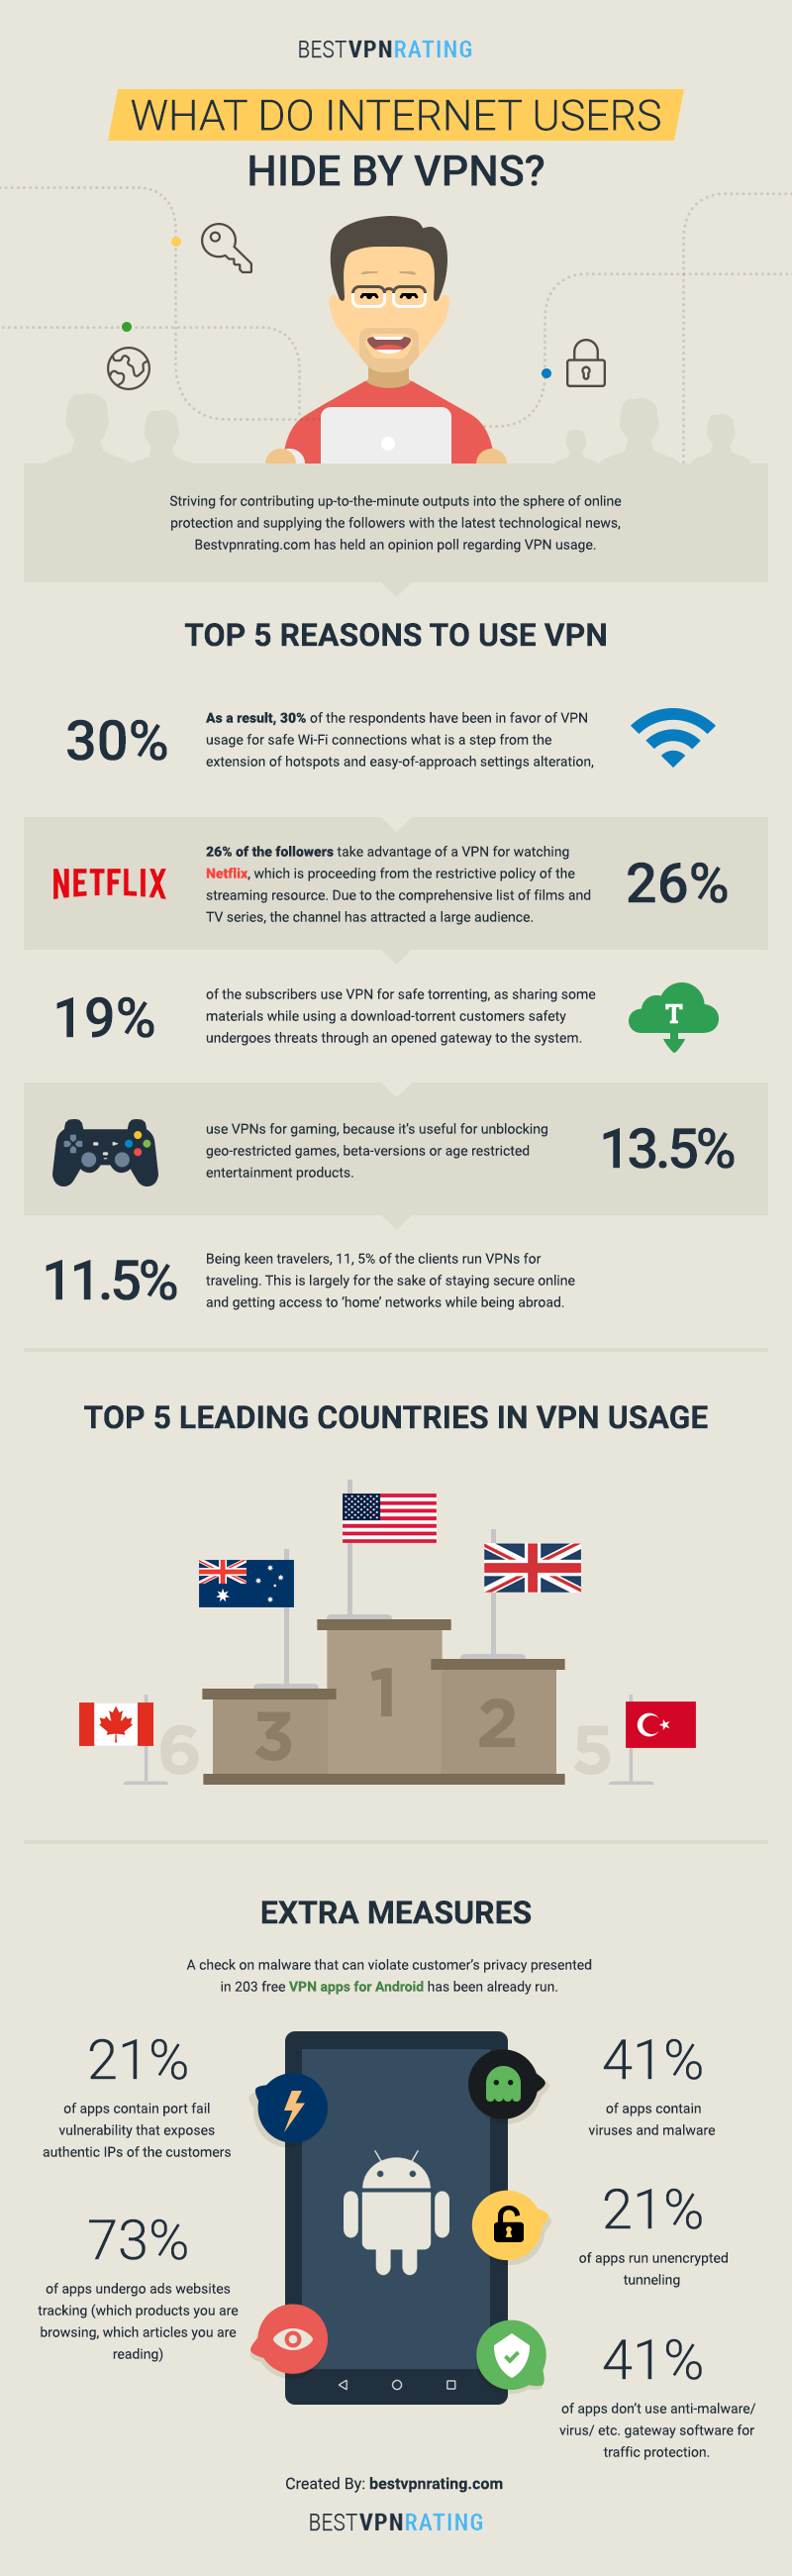 6. Best VPN Rating has just released a remarkable infographic. Besides its fabulous design, you  ...